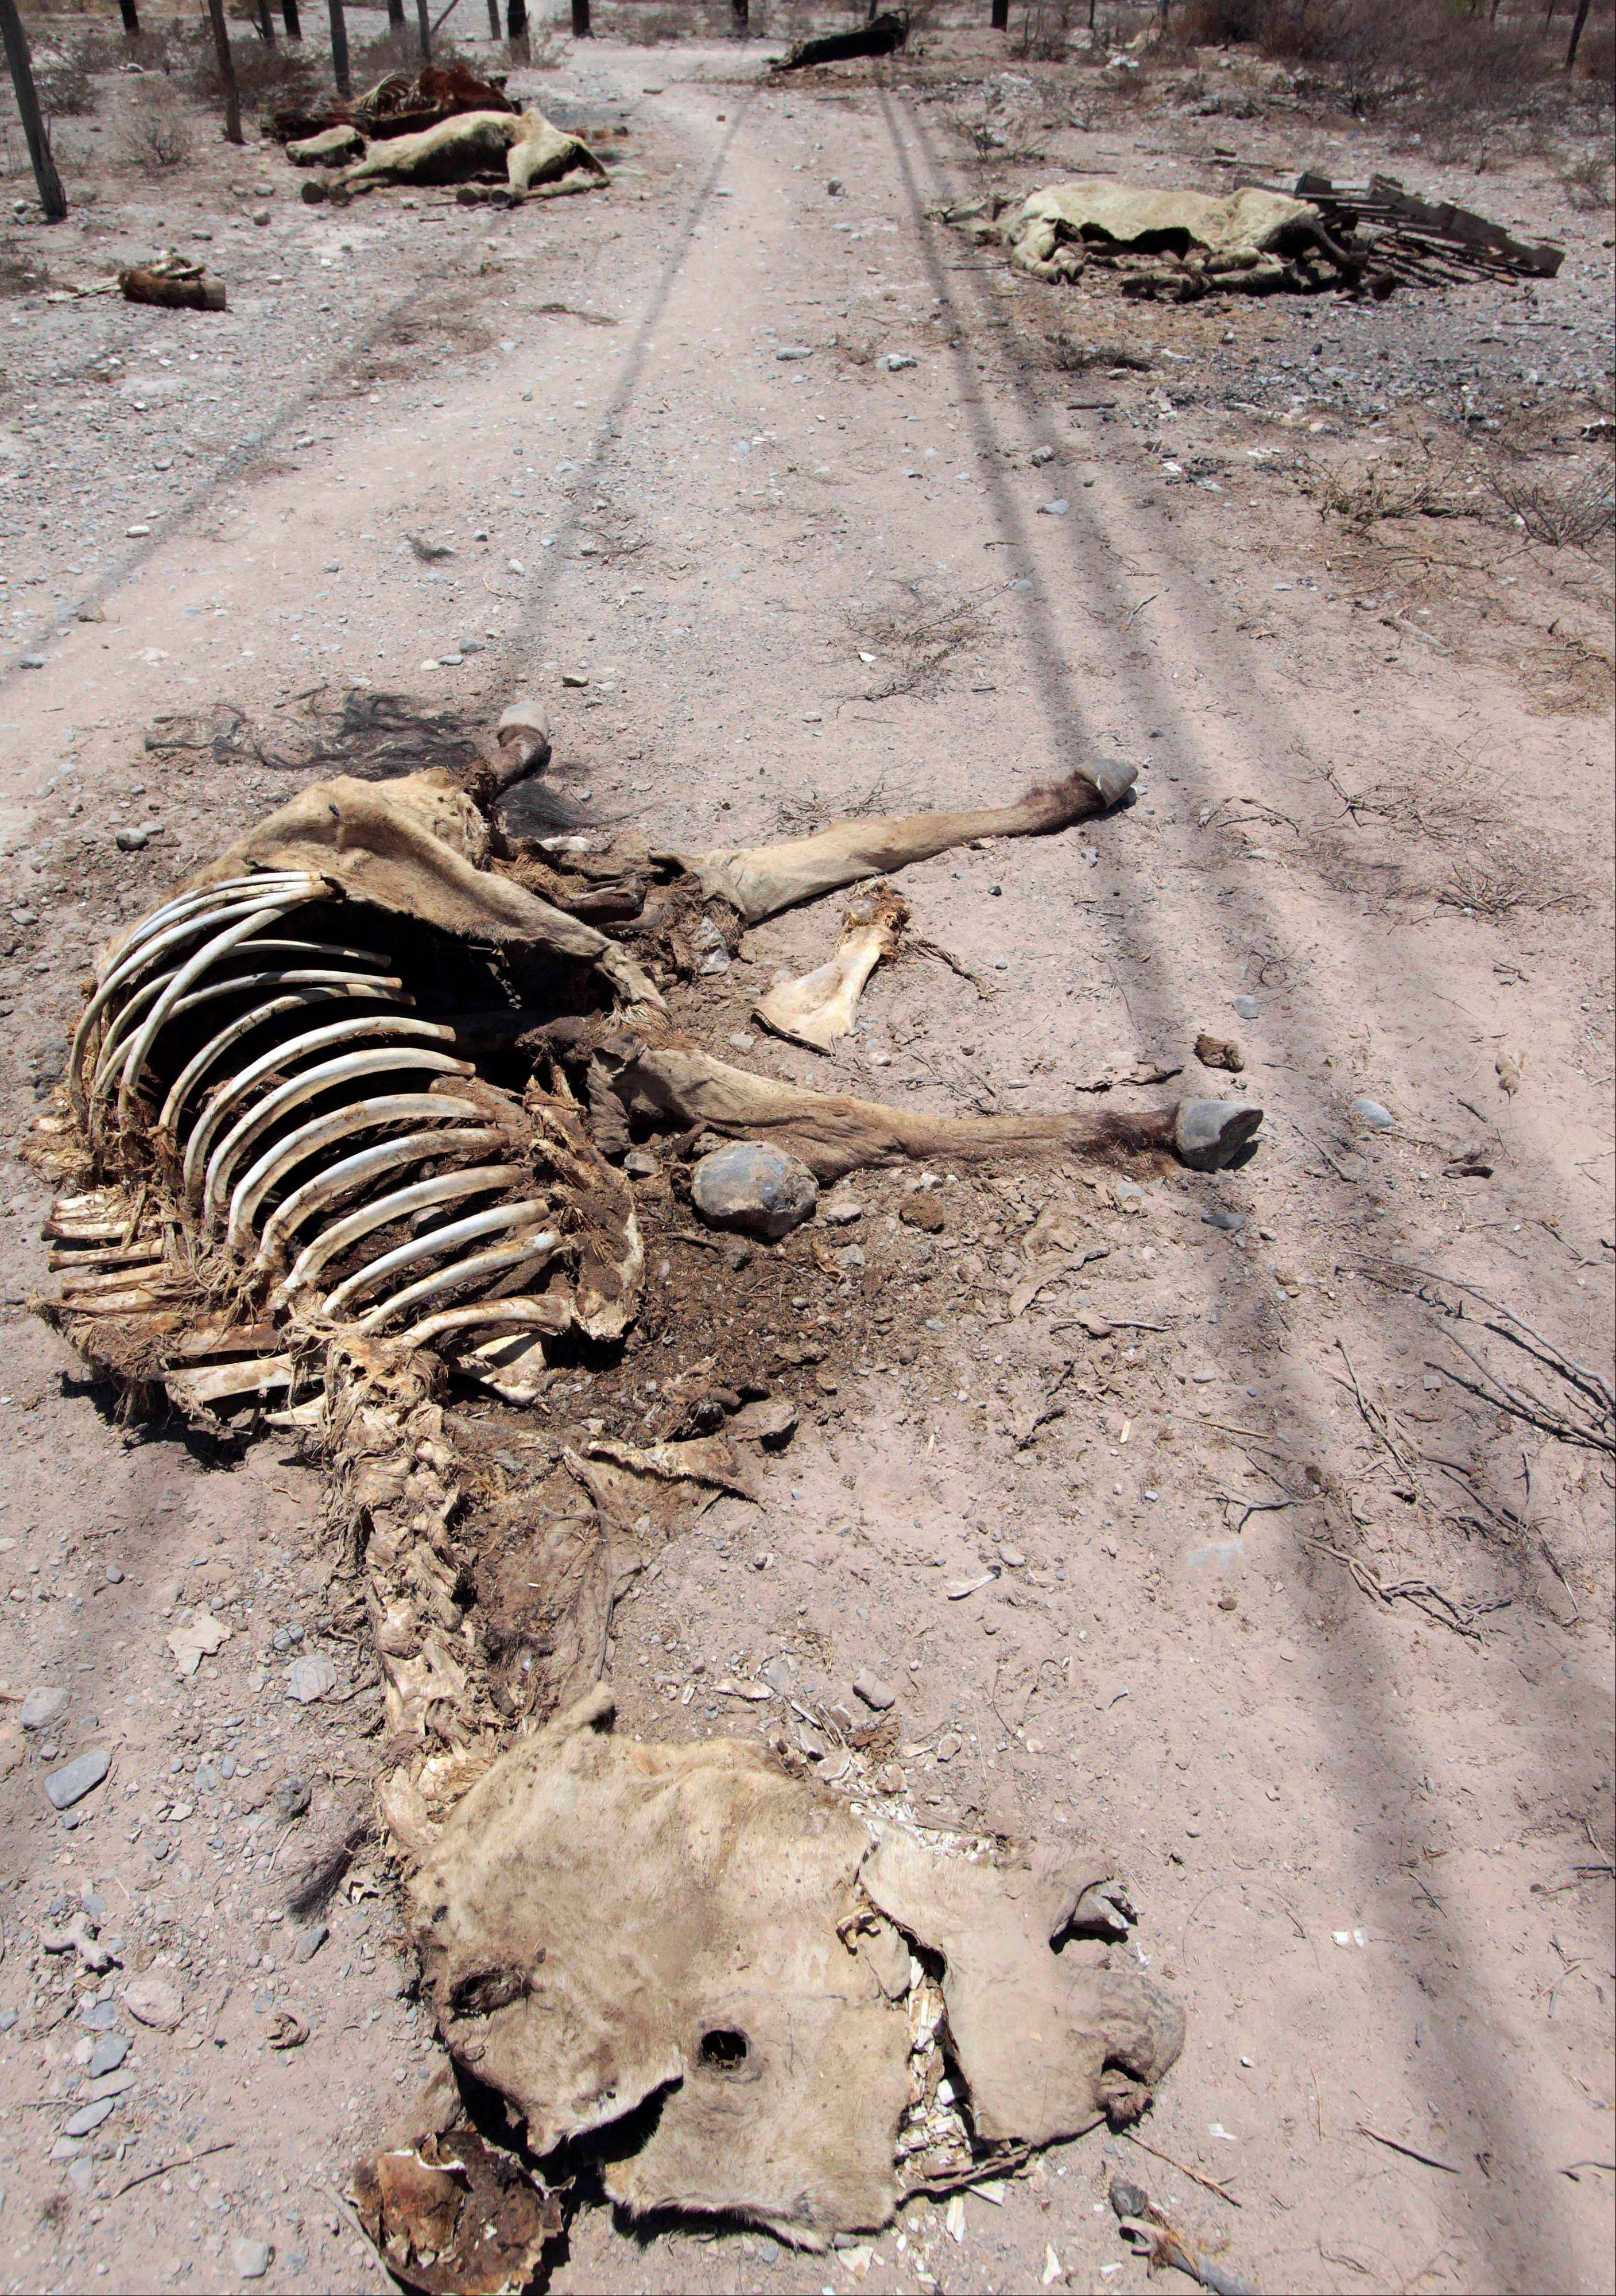 The remains of dead animals lay on a rural road on the outskirts of Torreon in northern Mexico.